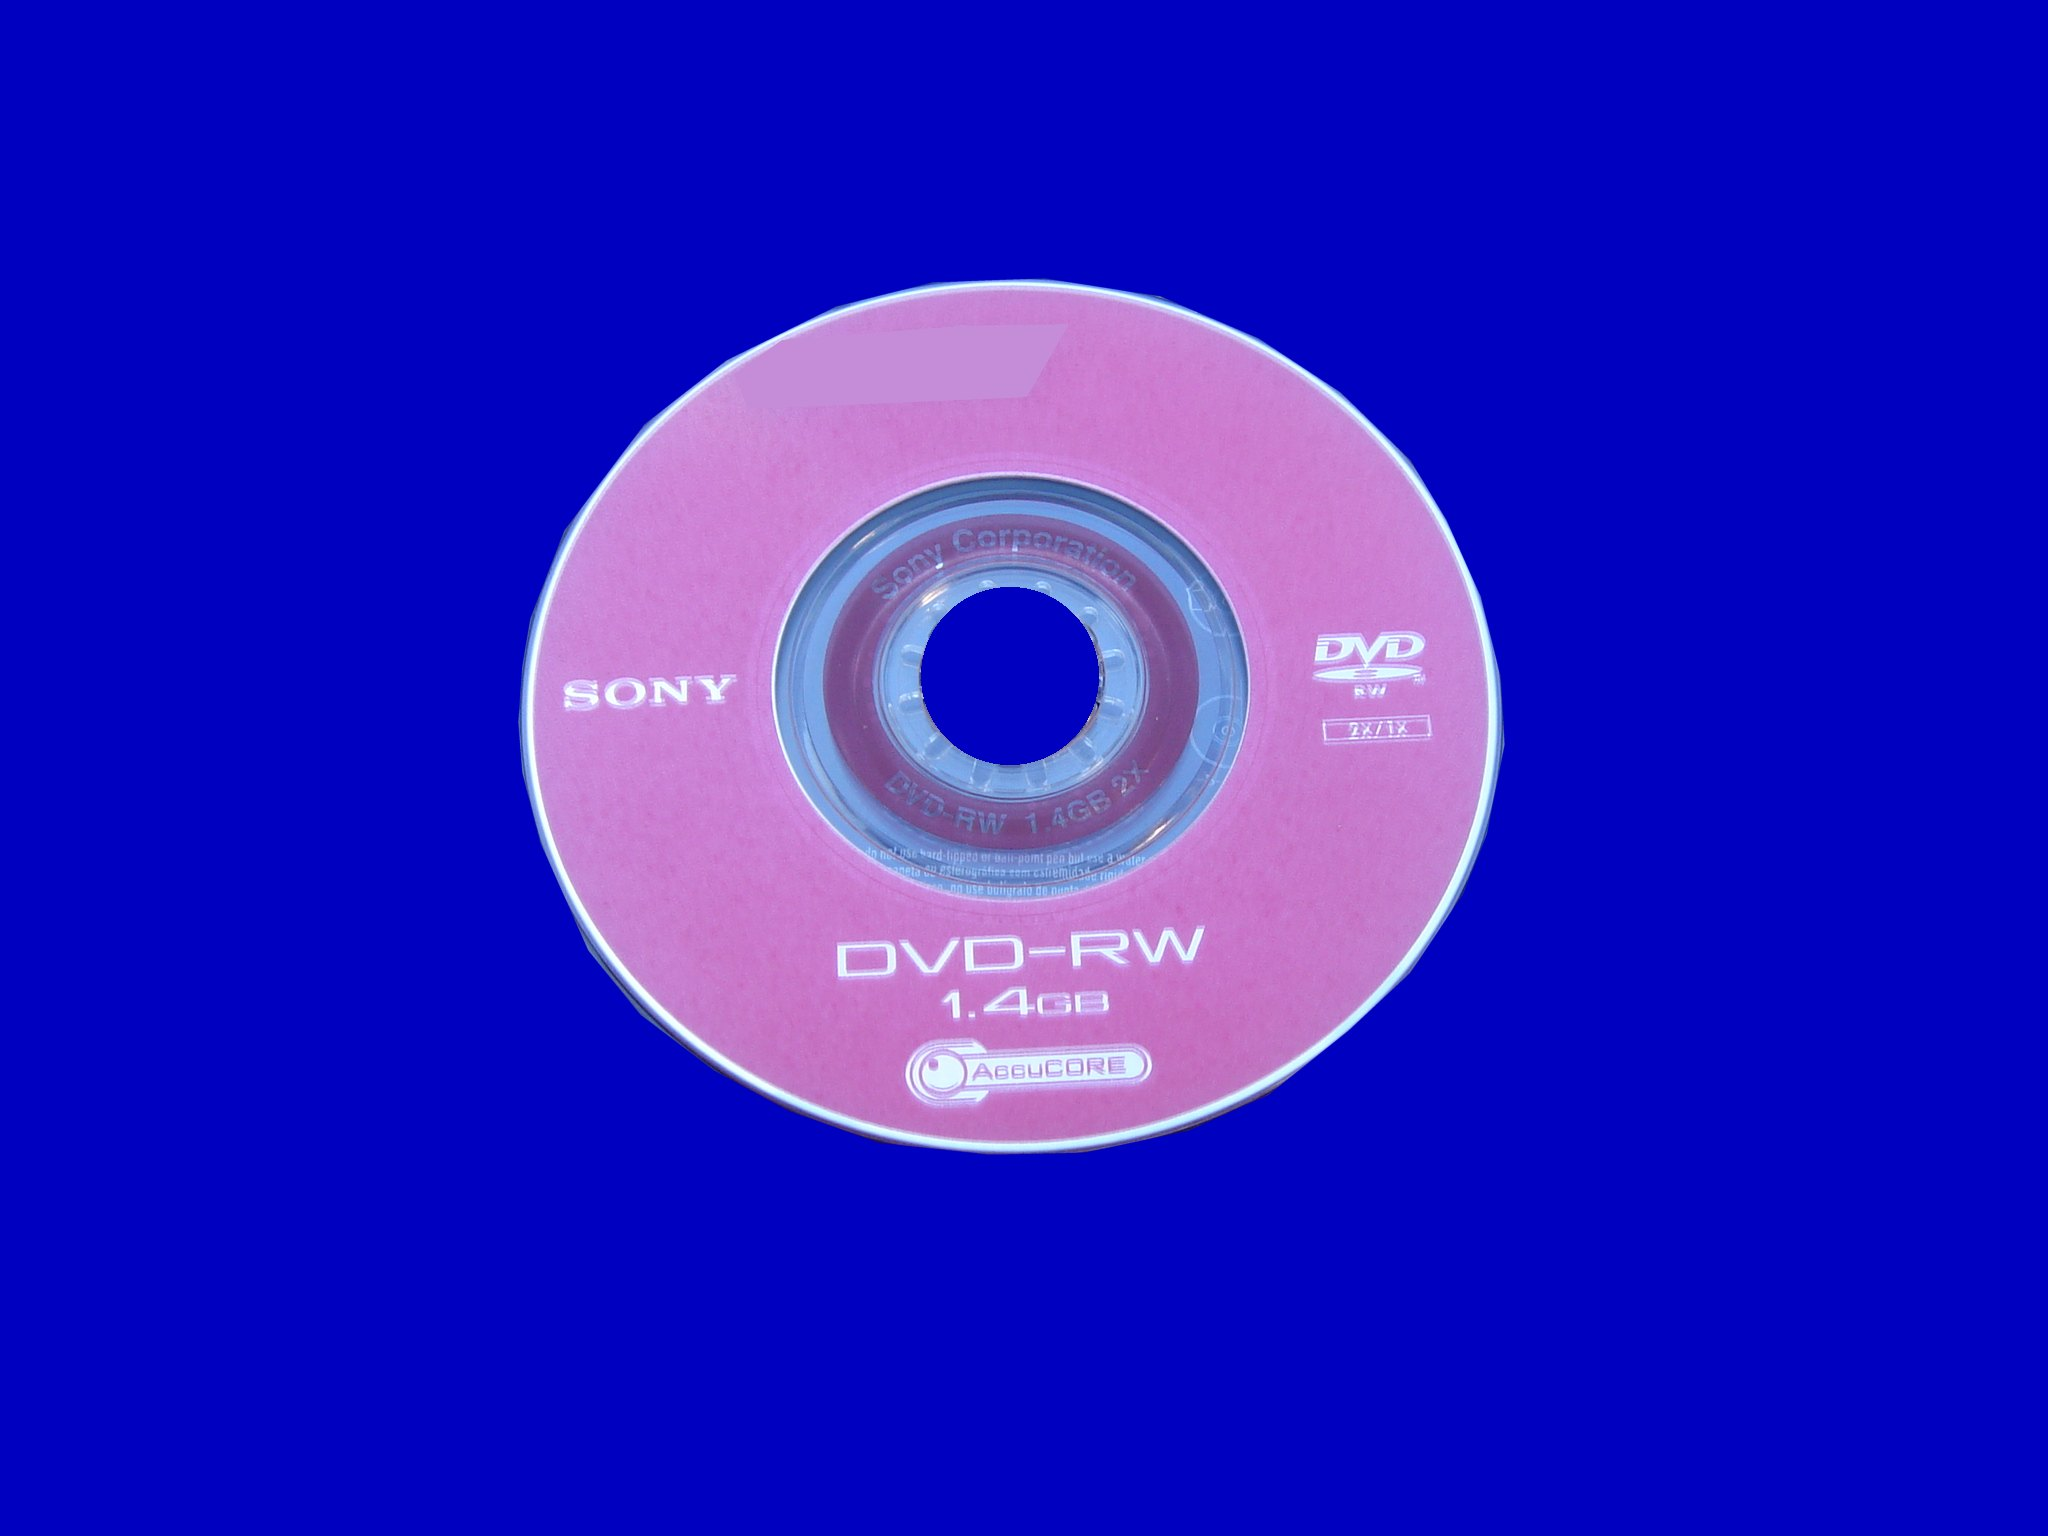 A Sony pink DVD-RW 8cm disk used in the camcorder but displayed error message during playback.